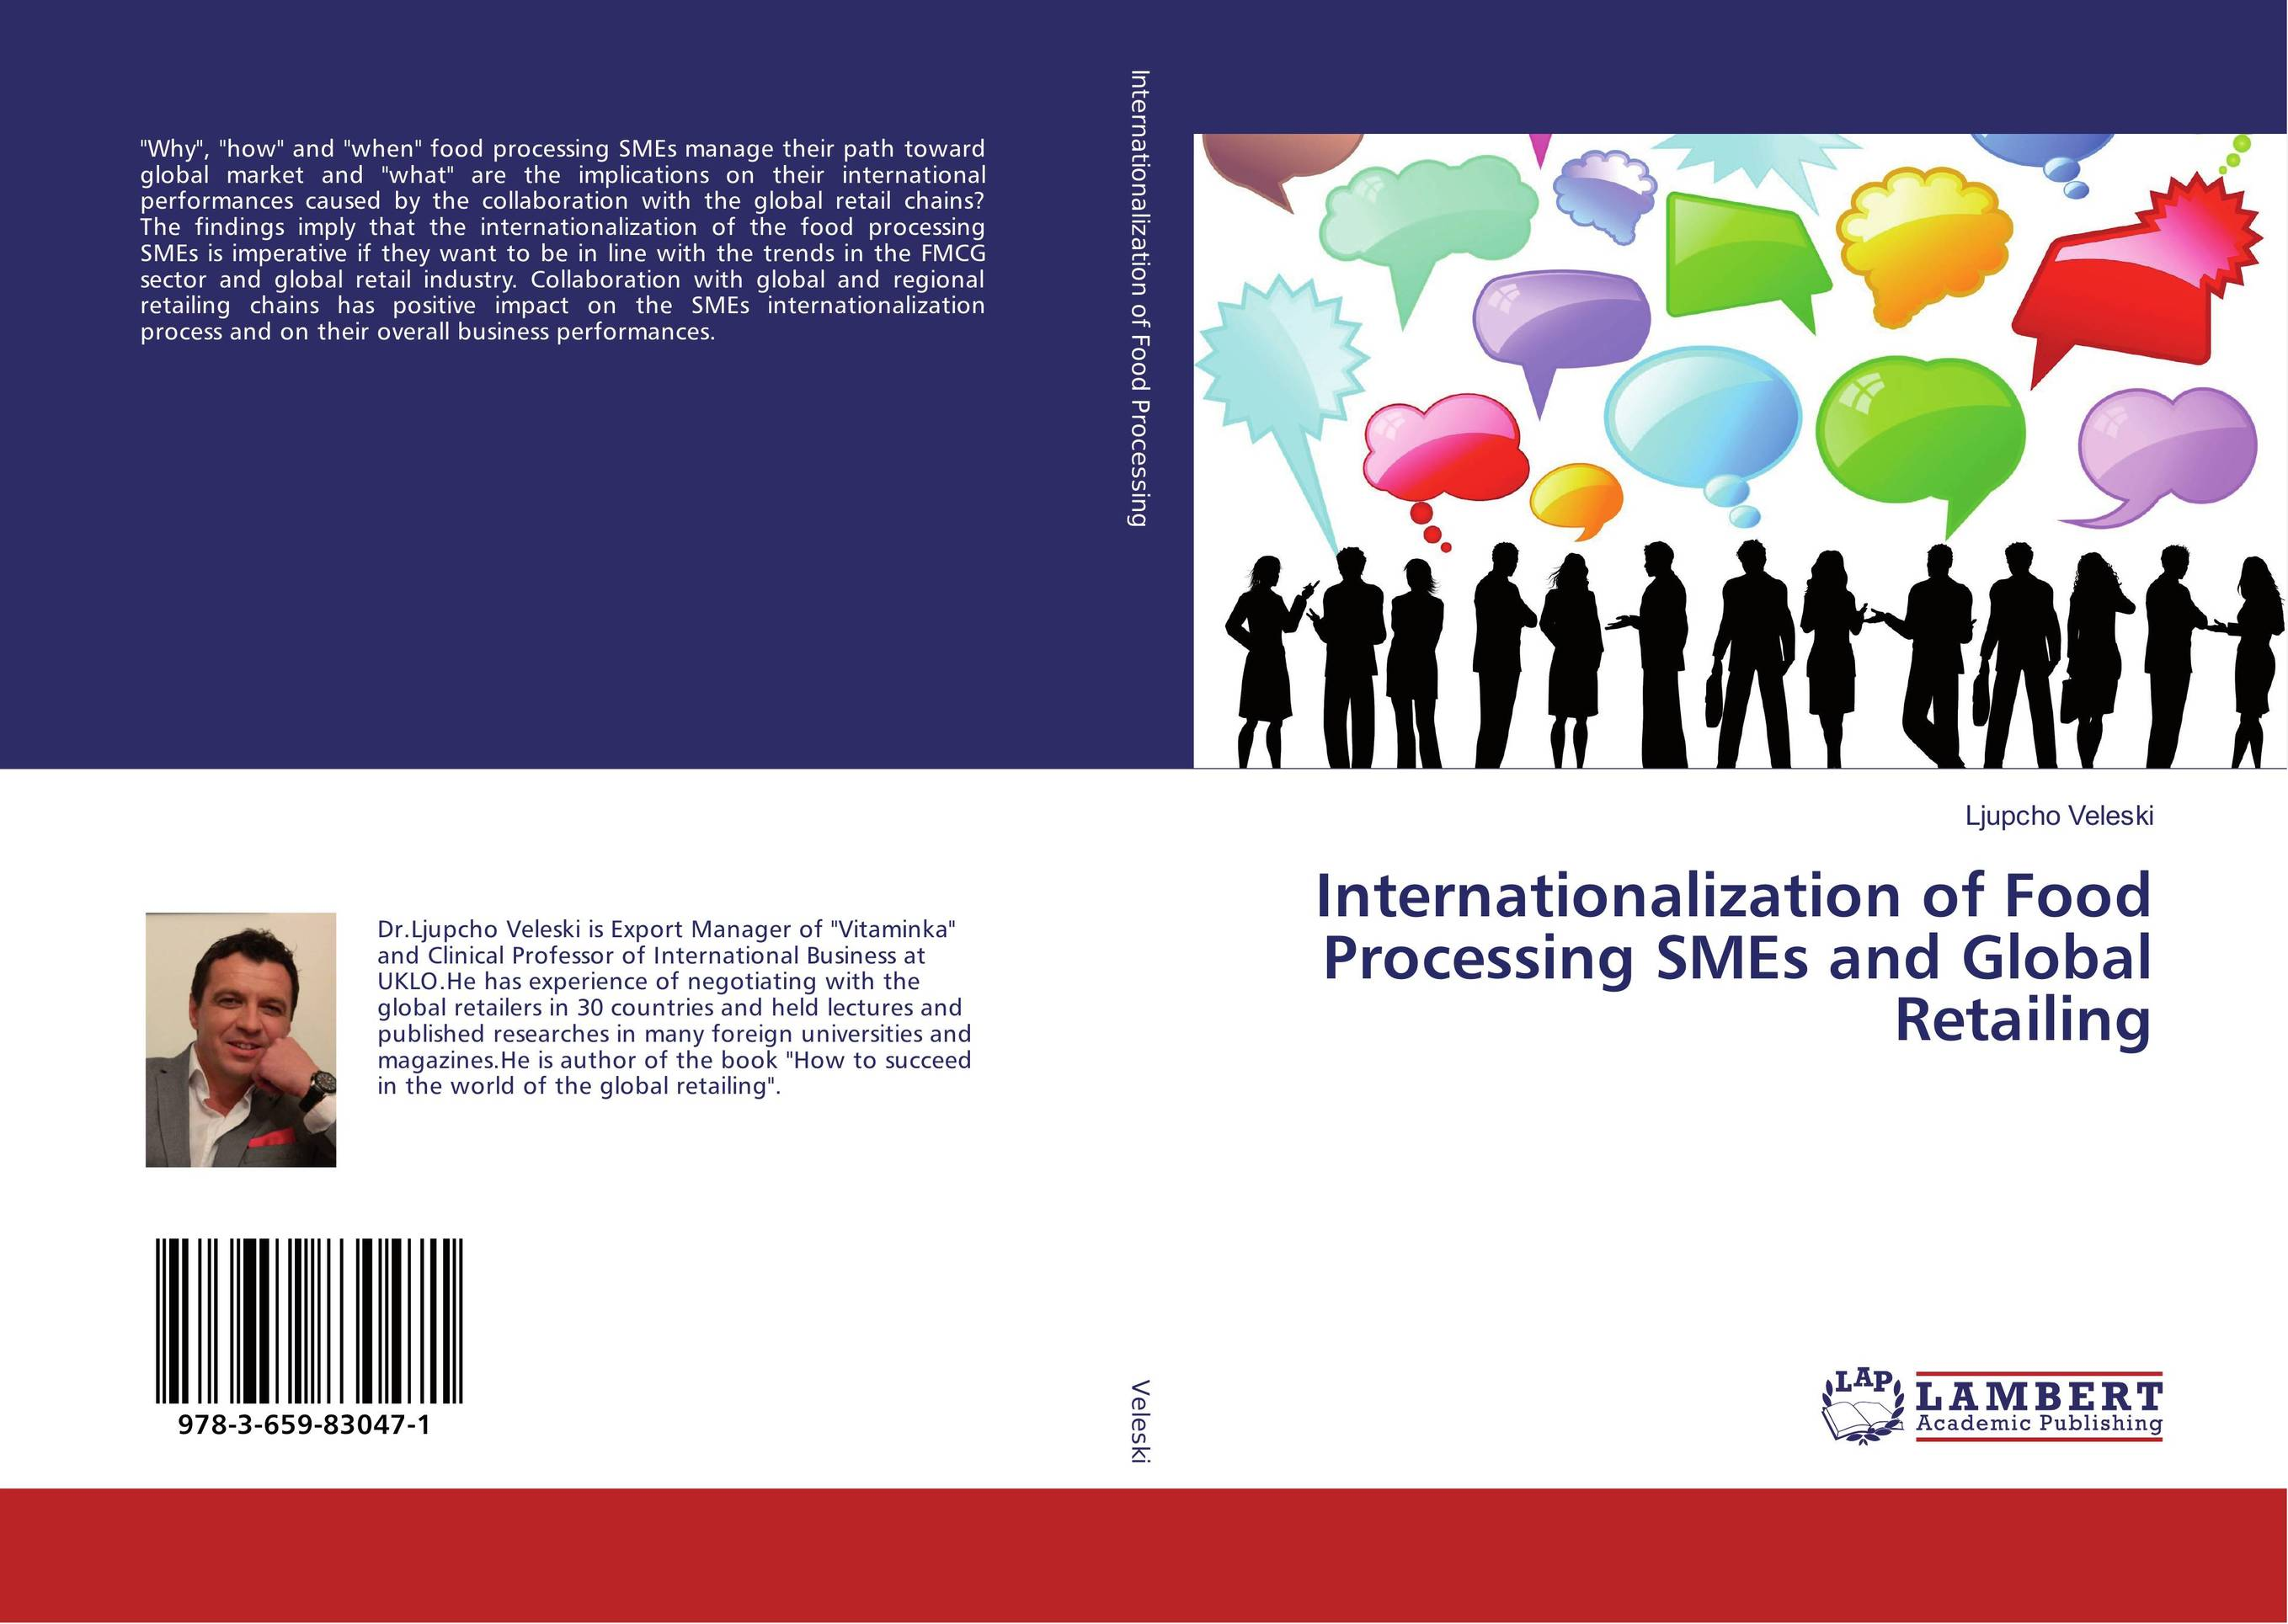 Internationalization of Food Processing SMEs and Global Retailing